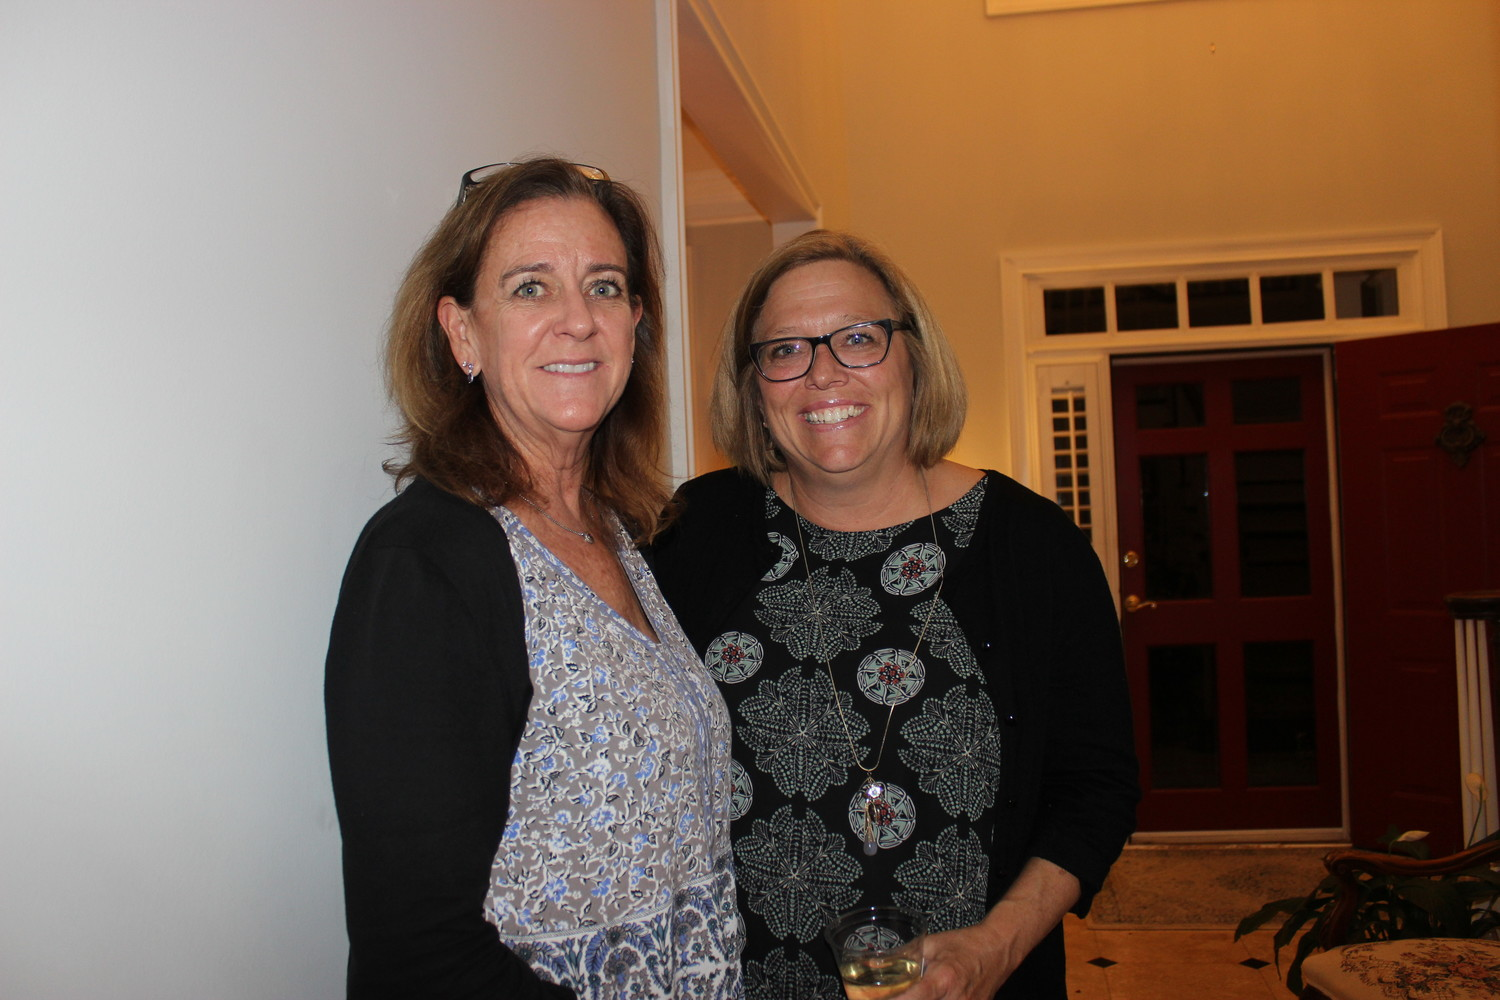 Suzanne Green and Kim Scott at Kelly Barrera's victory party